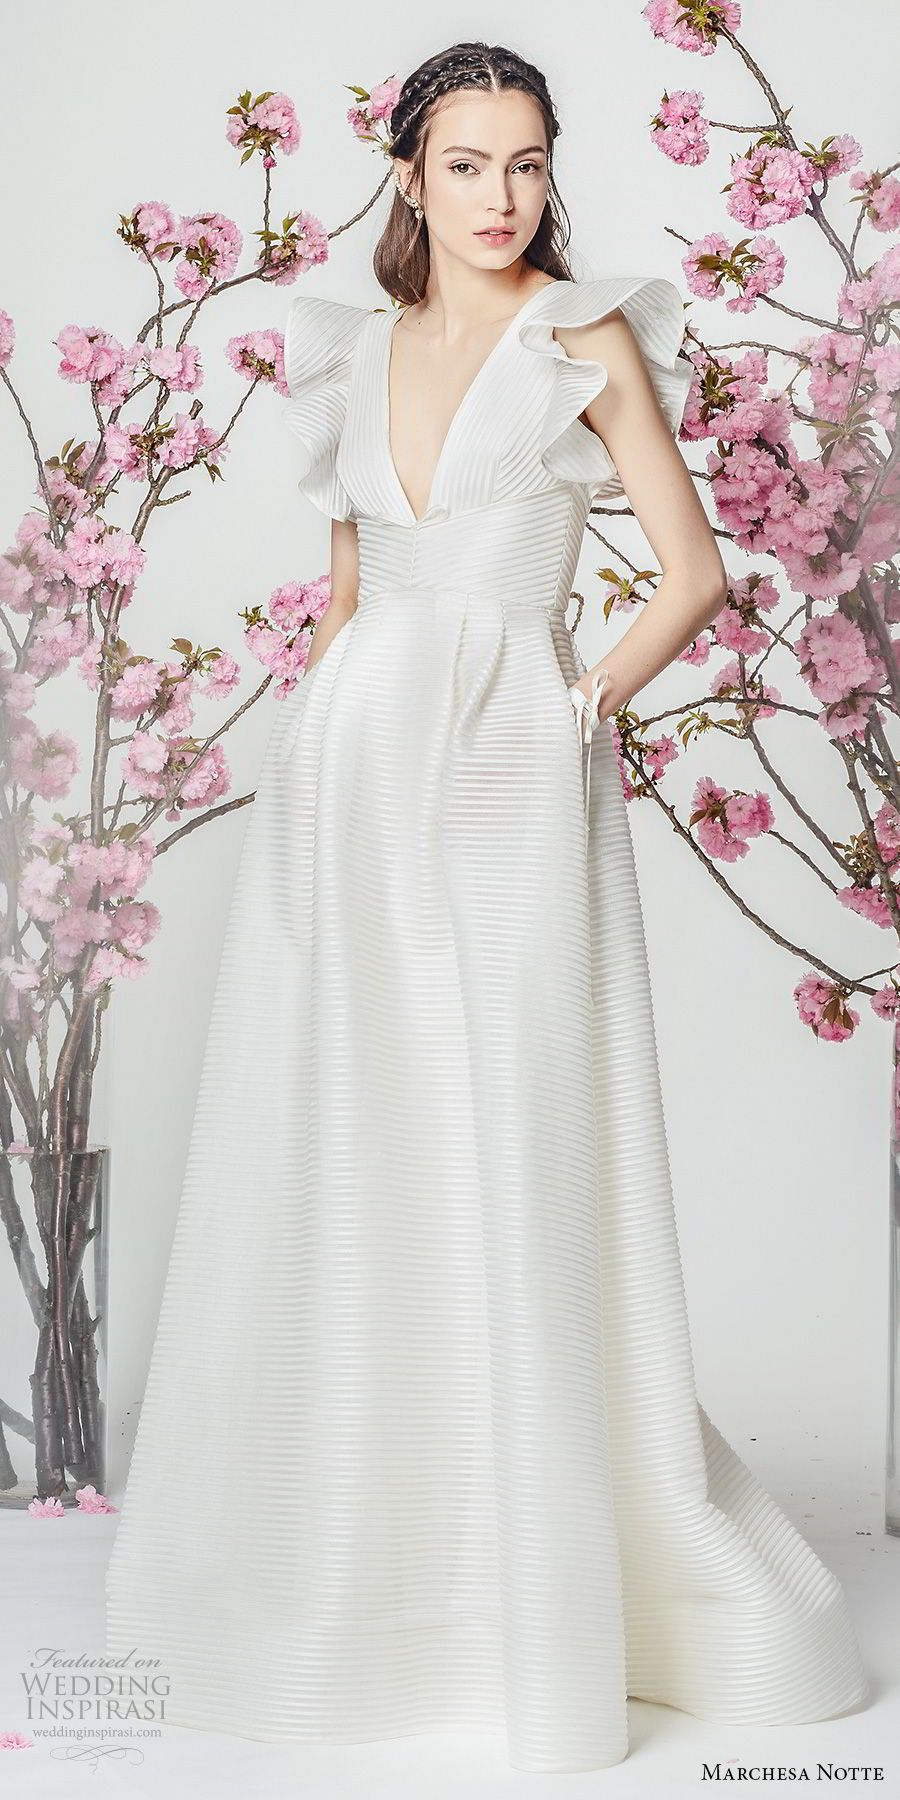 Marchesa notte spring wedding dresses in gowns with